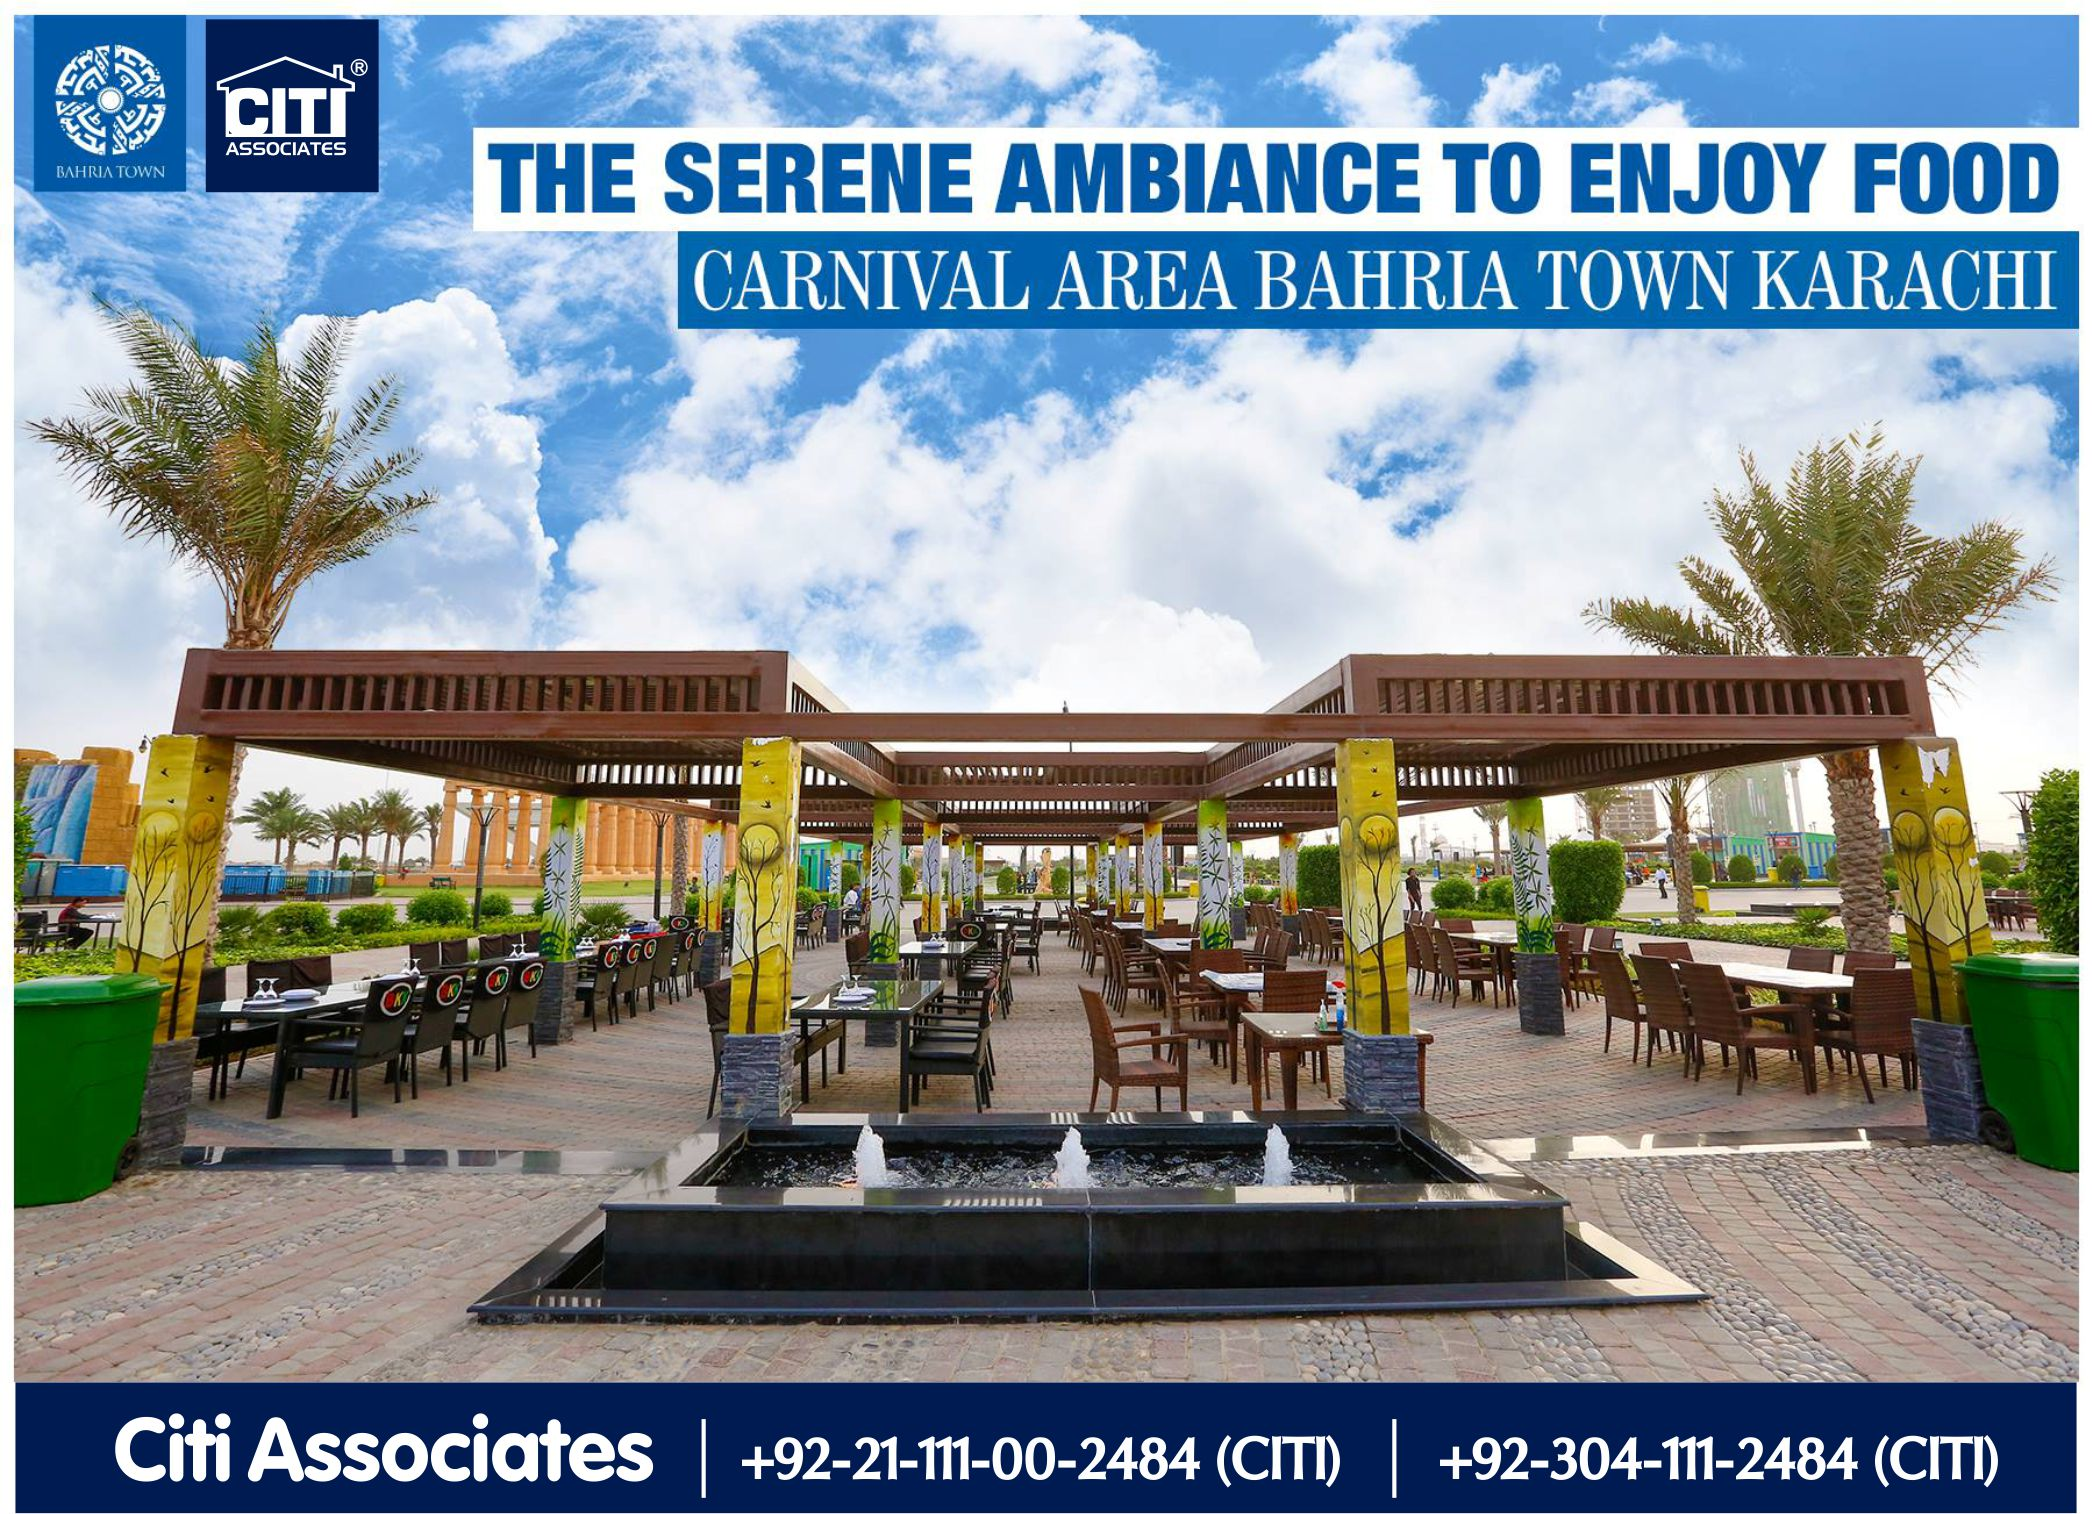 Enjoy Food at Carnival Area -Bahria Town Karachi